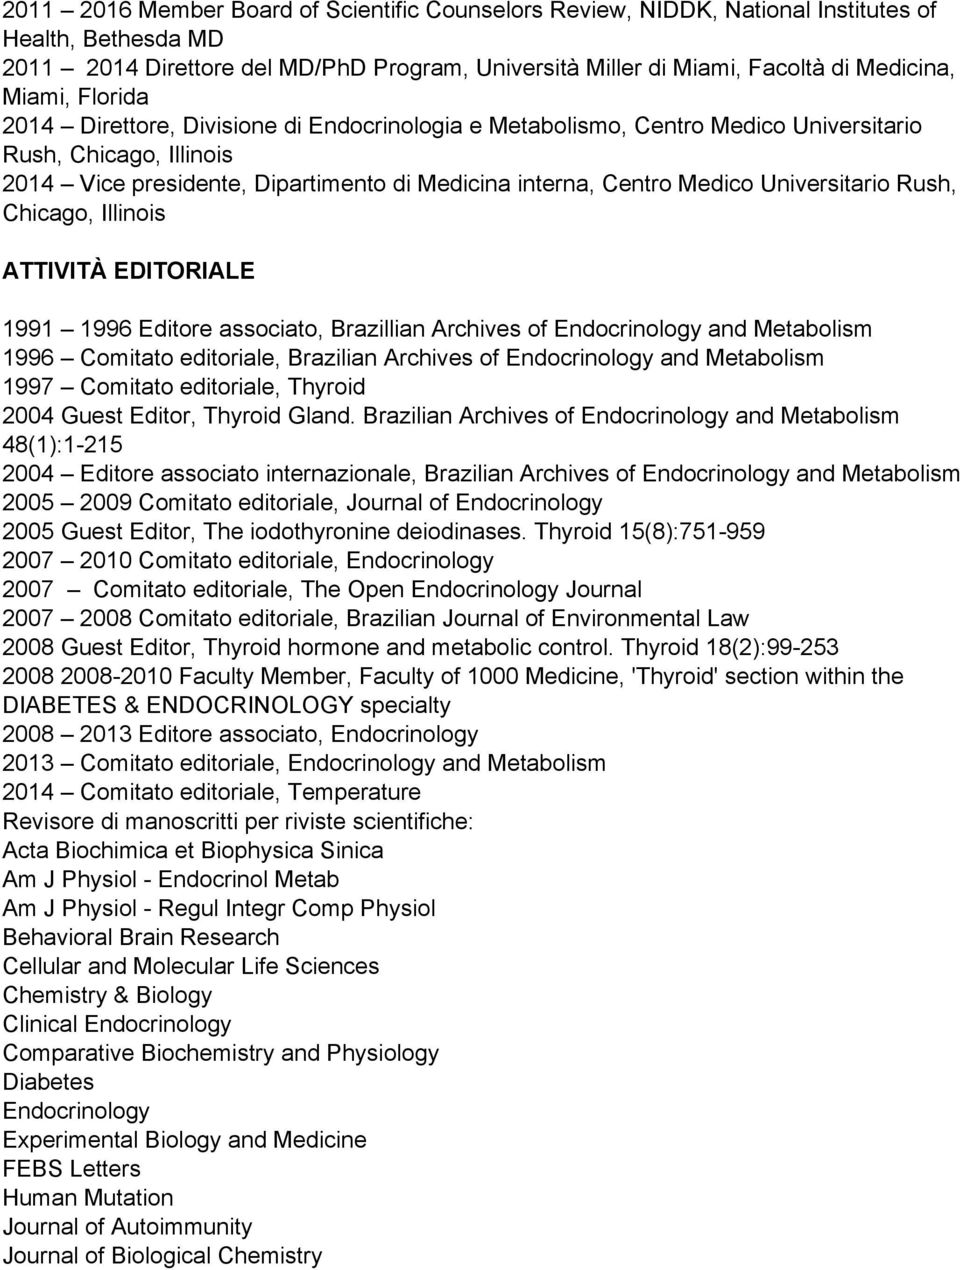 Universitario Rush, Chicago, Illinois ATTIVITÀ EDITORIALE 1991 1996 Editore associato, Brazillian Archives of Endocrinology and Metabolism 1996 Comitato editoriale, Brazilian Archives of